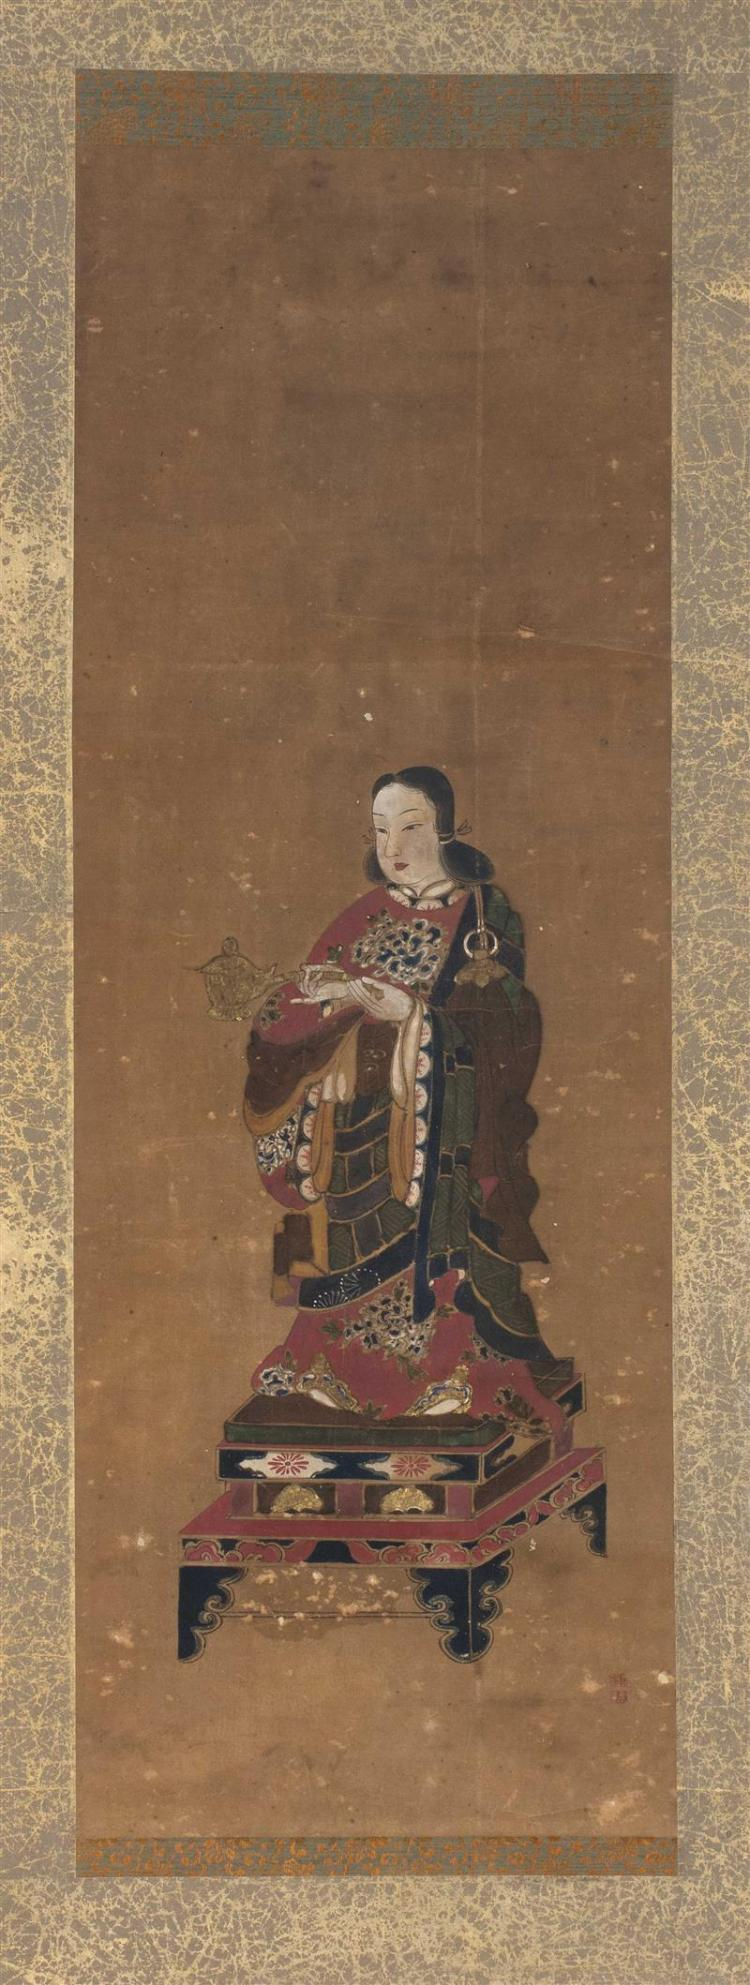 SCROLL PAINTING ON SILK Depicting a Buddhistic figure standing on a rectangular platform. 32.5